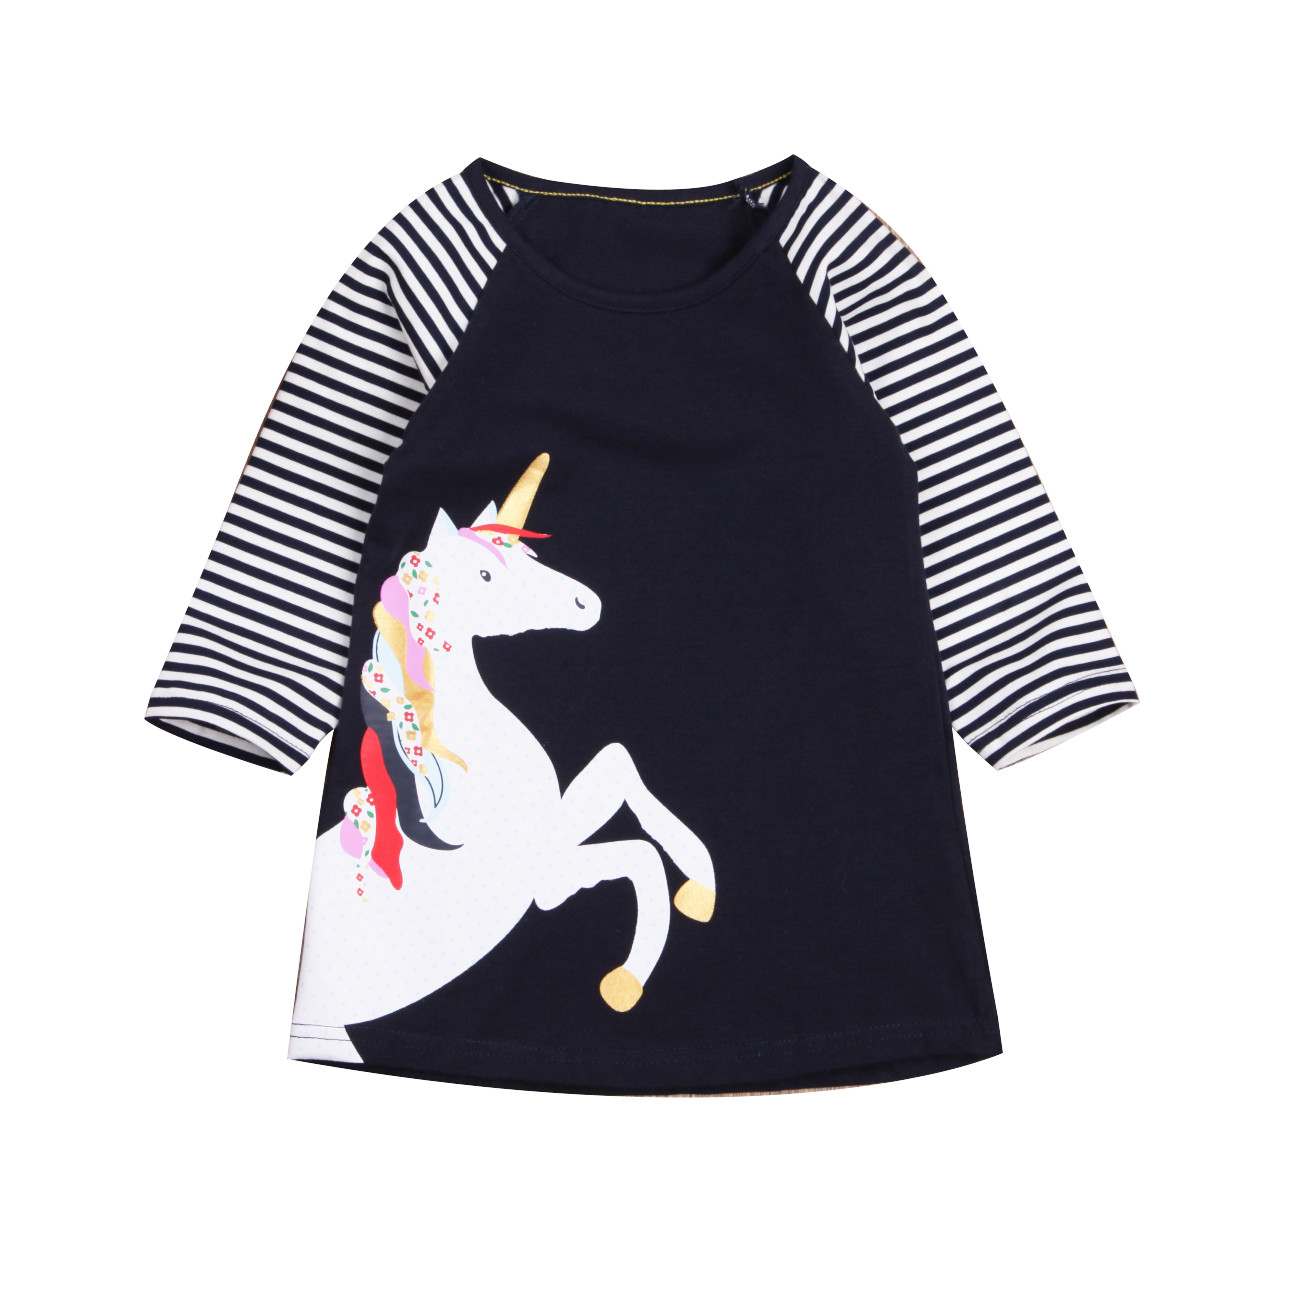 Princess Kids Baby Girls Dress Cotton Cute Mini Long Sleeve Casual Striped Party Casual Dresses Girl toddlers girls dots deer pleated cotton dress long sleeve dresses page 10